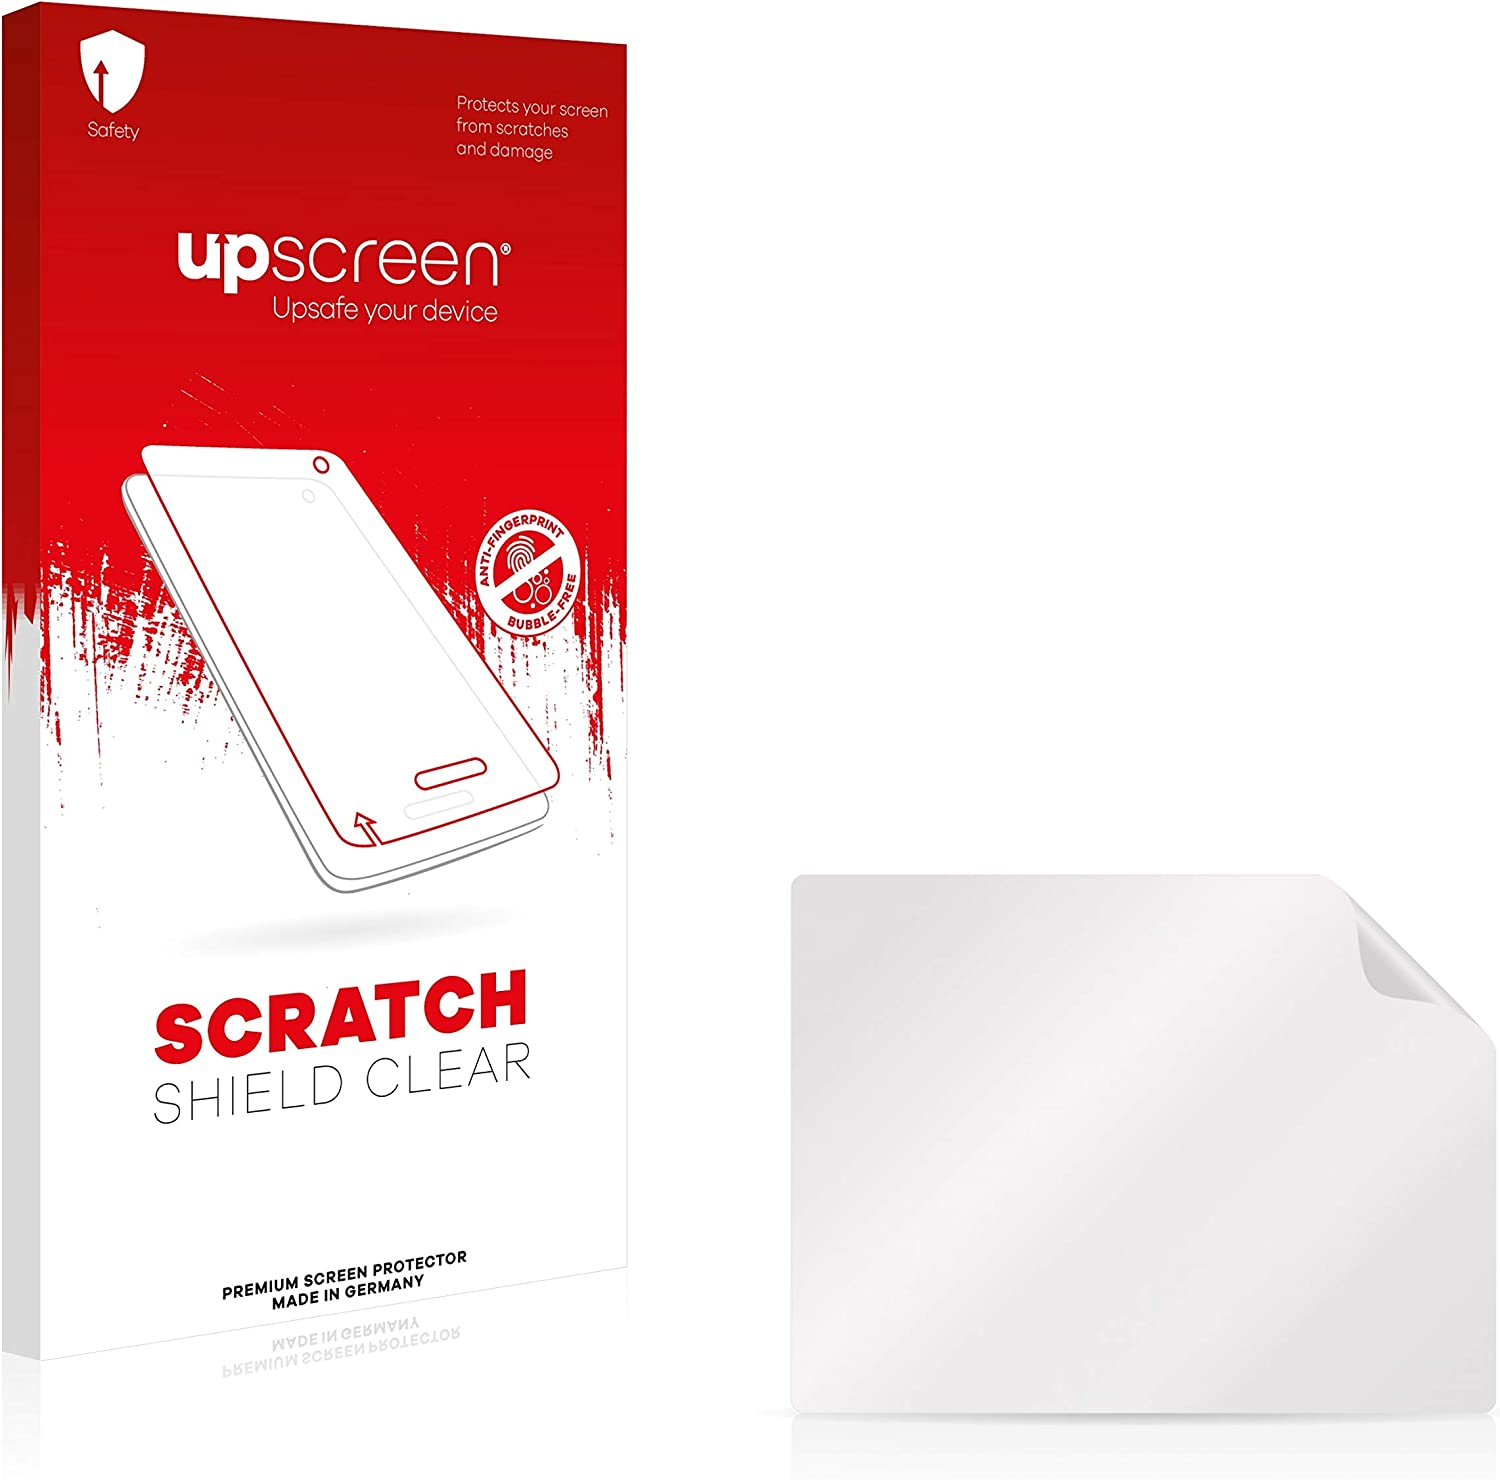 Scratch Shield Clear Screen Protector for Atos Worldline Yomani Strong Scratch Protection High Transparency Multitouch Optimized upscreen